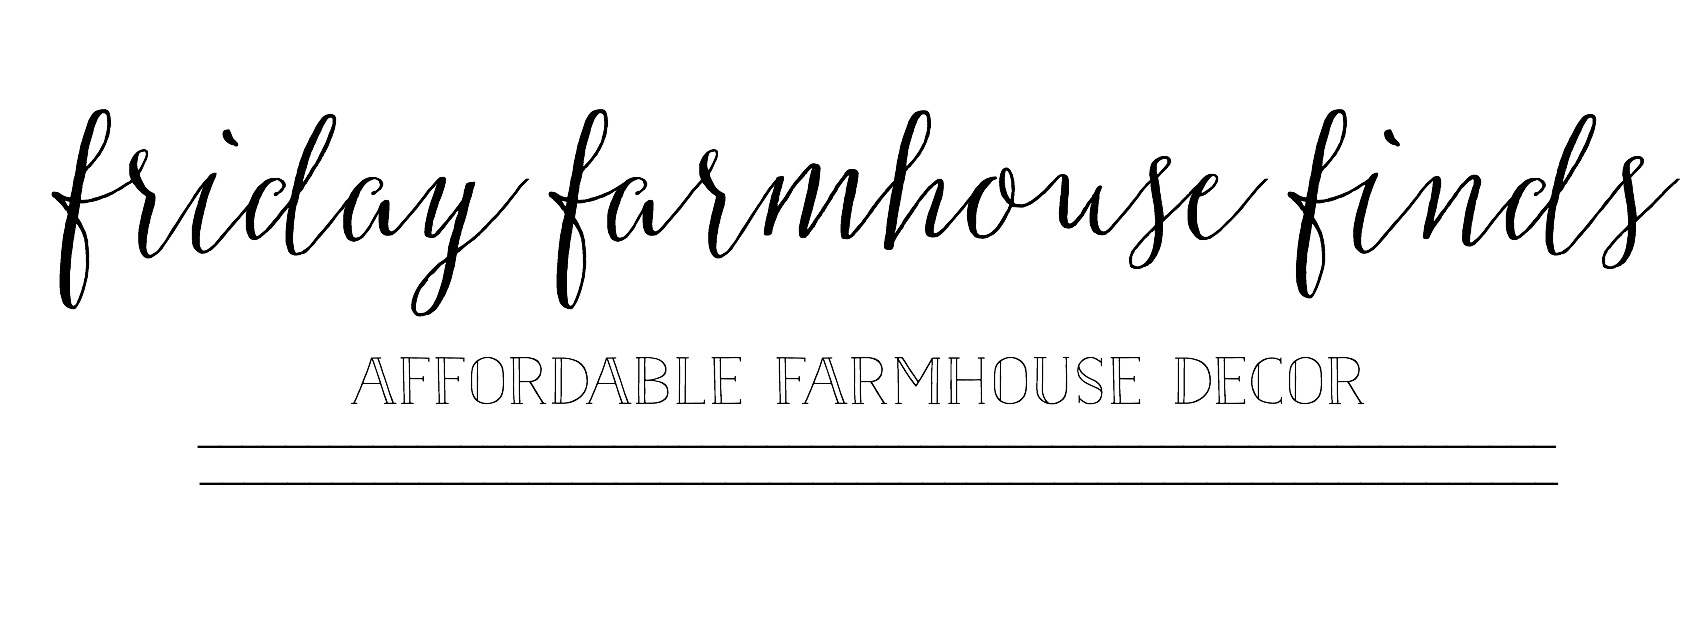 Friday Farmhouse Finds- Plum Pretty Decor and Design Bring You the Best in Affordable Farmhouse Decor